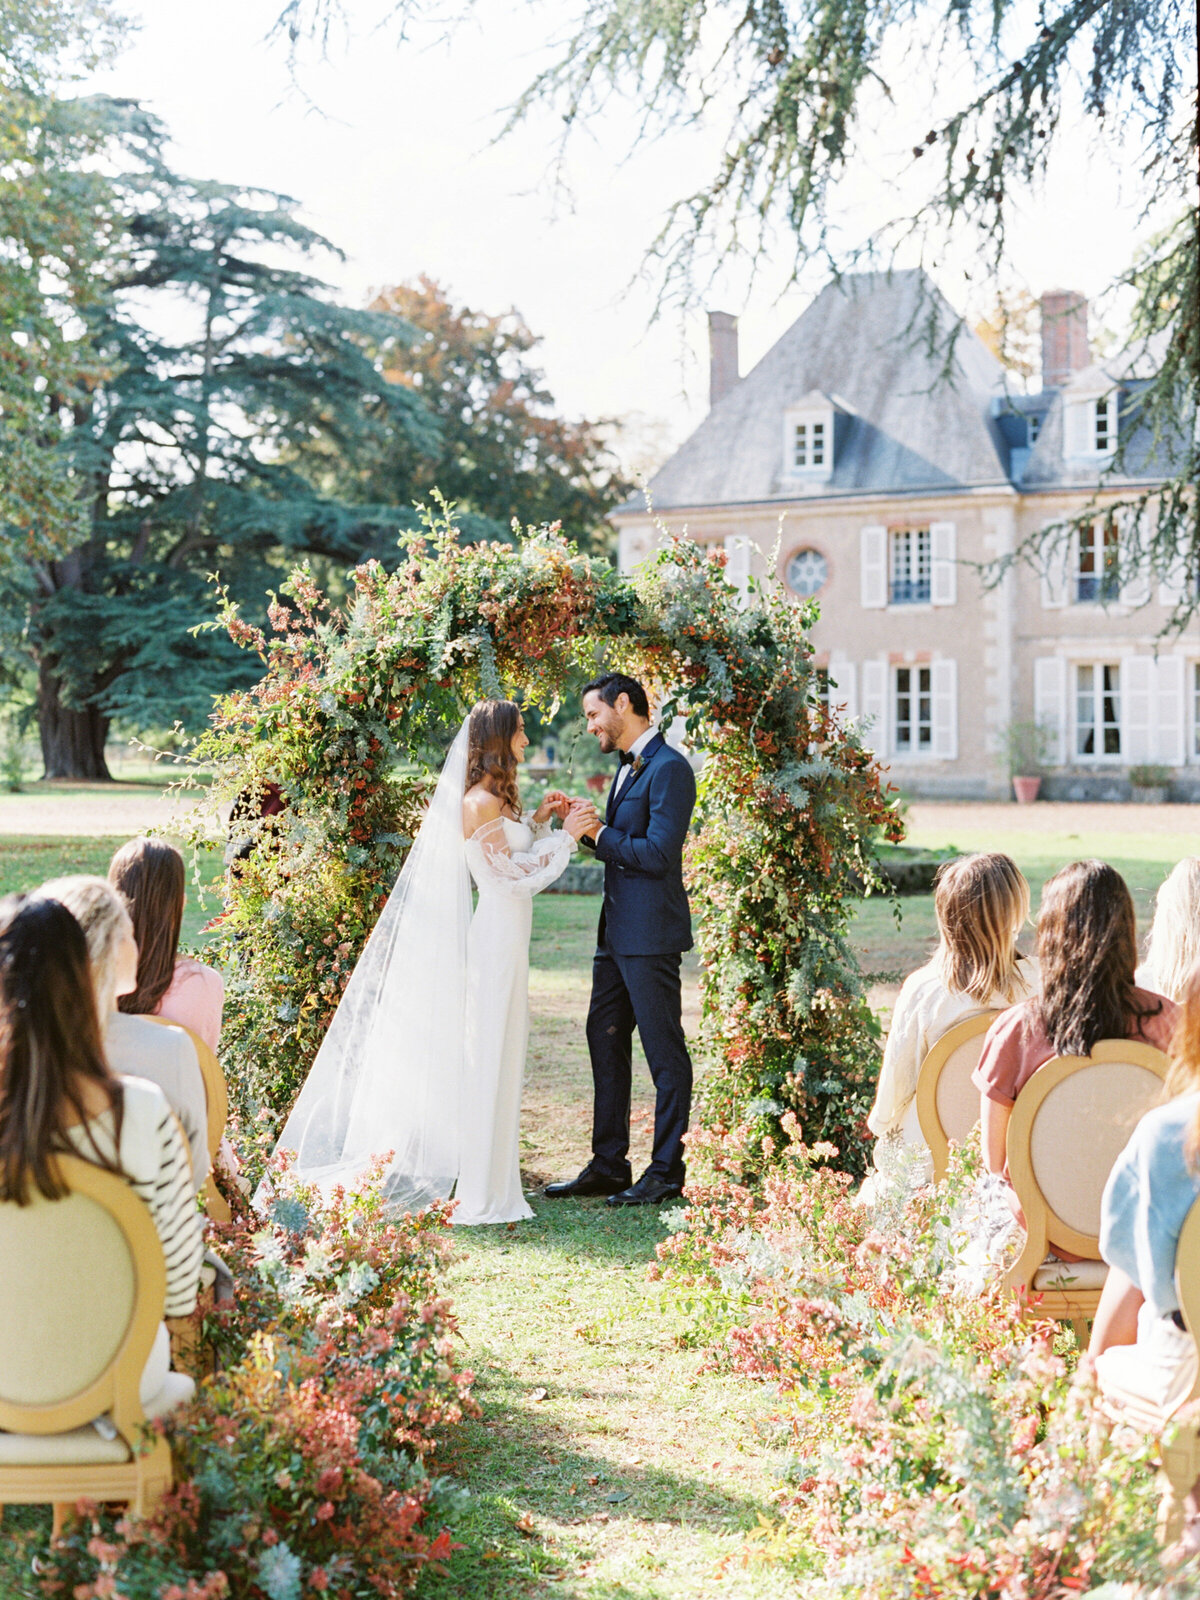 chateau-bouthonvilliers-wedding-paris-wedding-photographer-mackenzie-reiter-photography-29